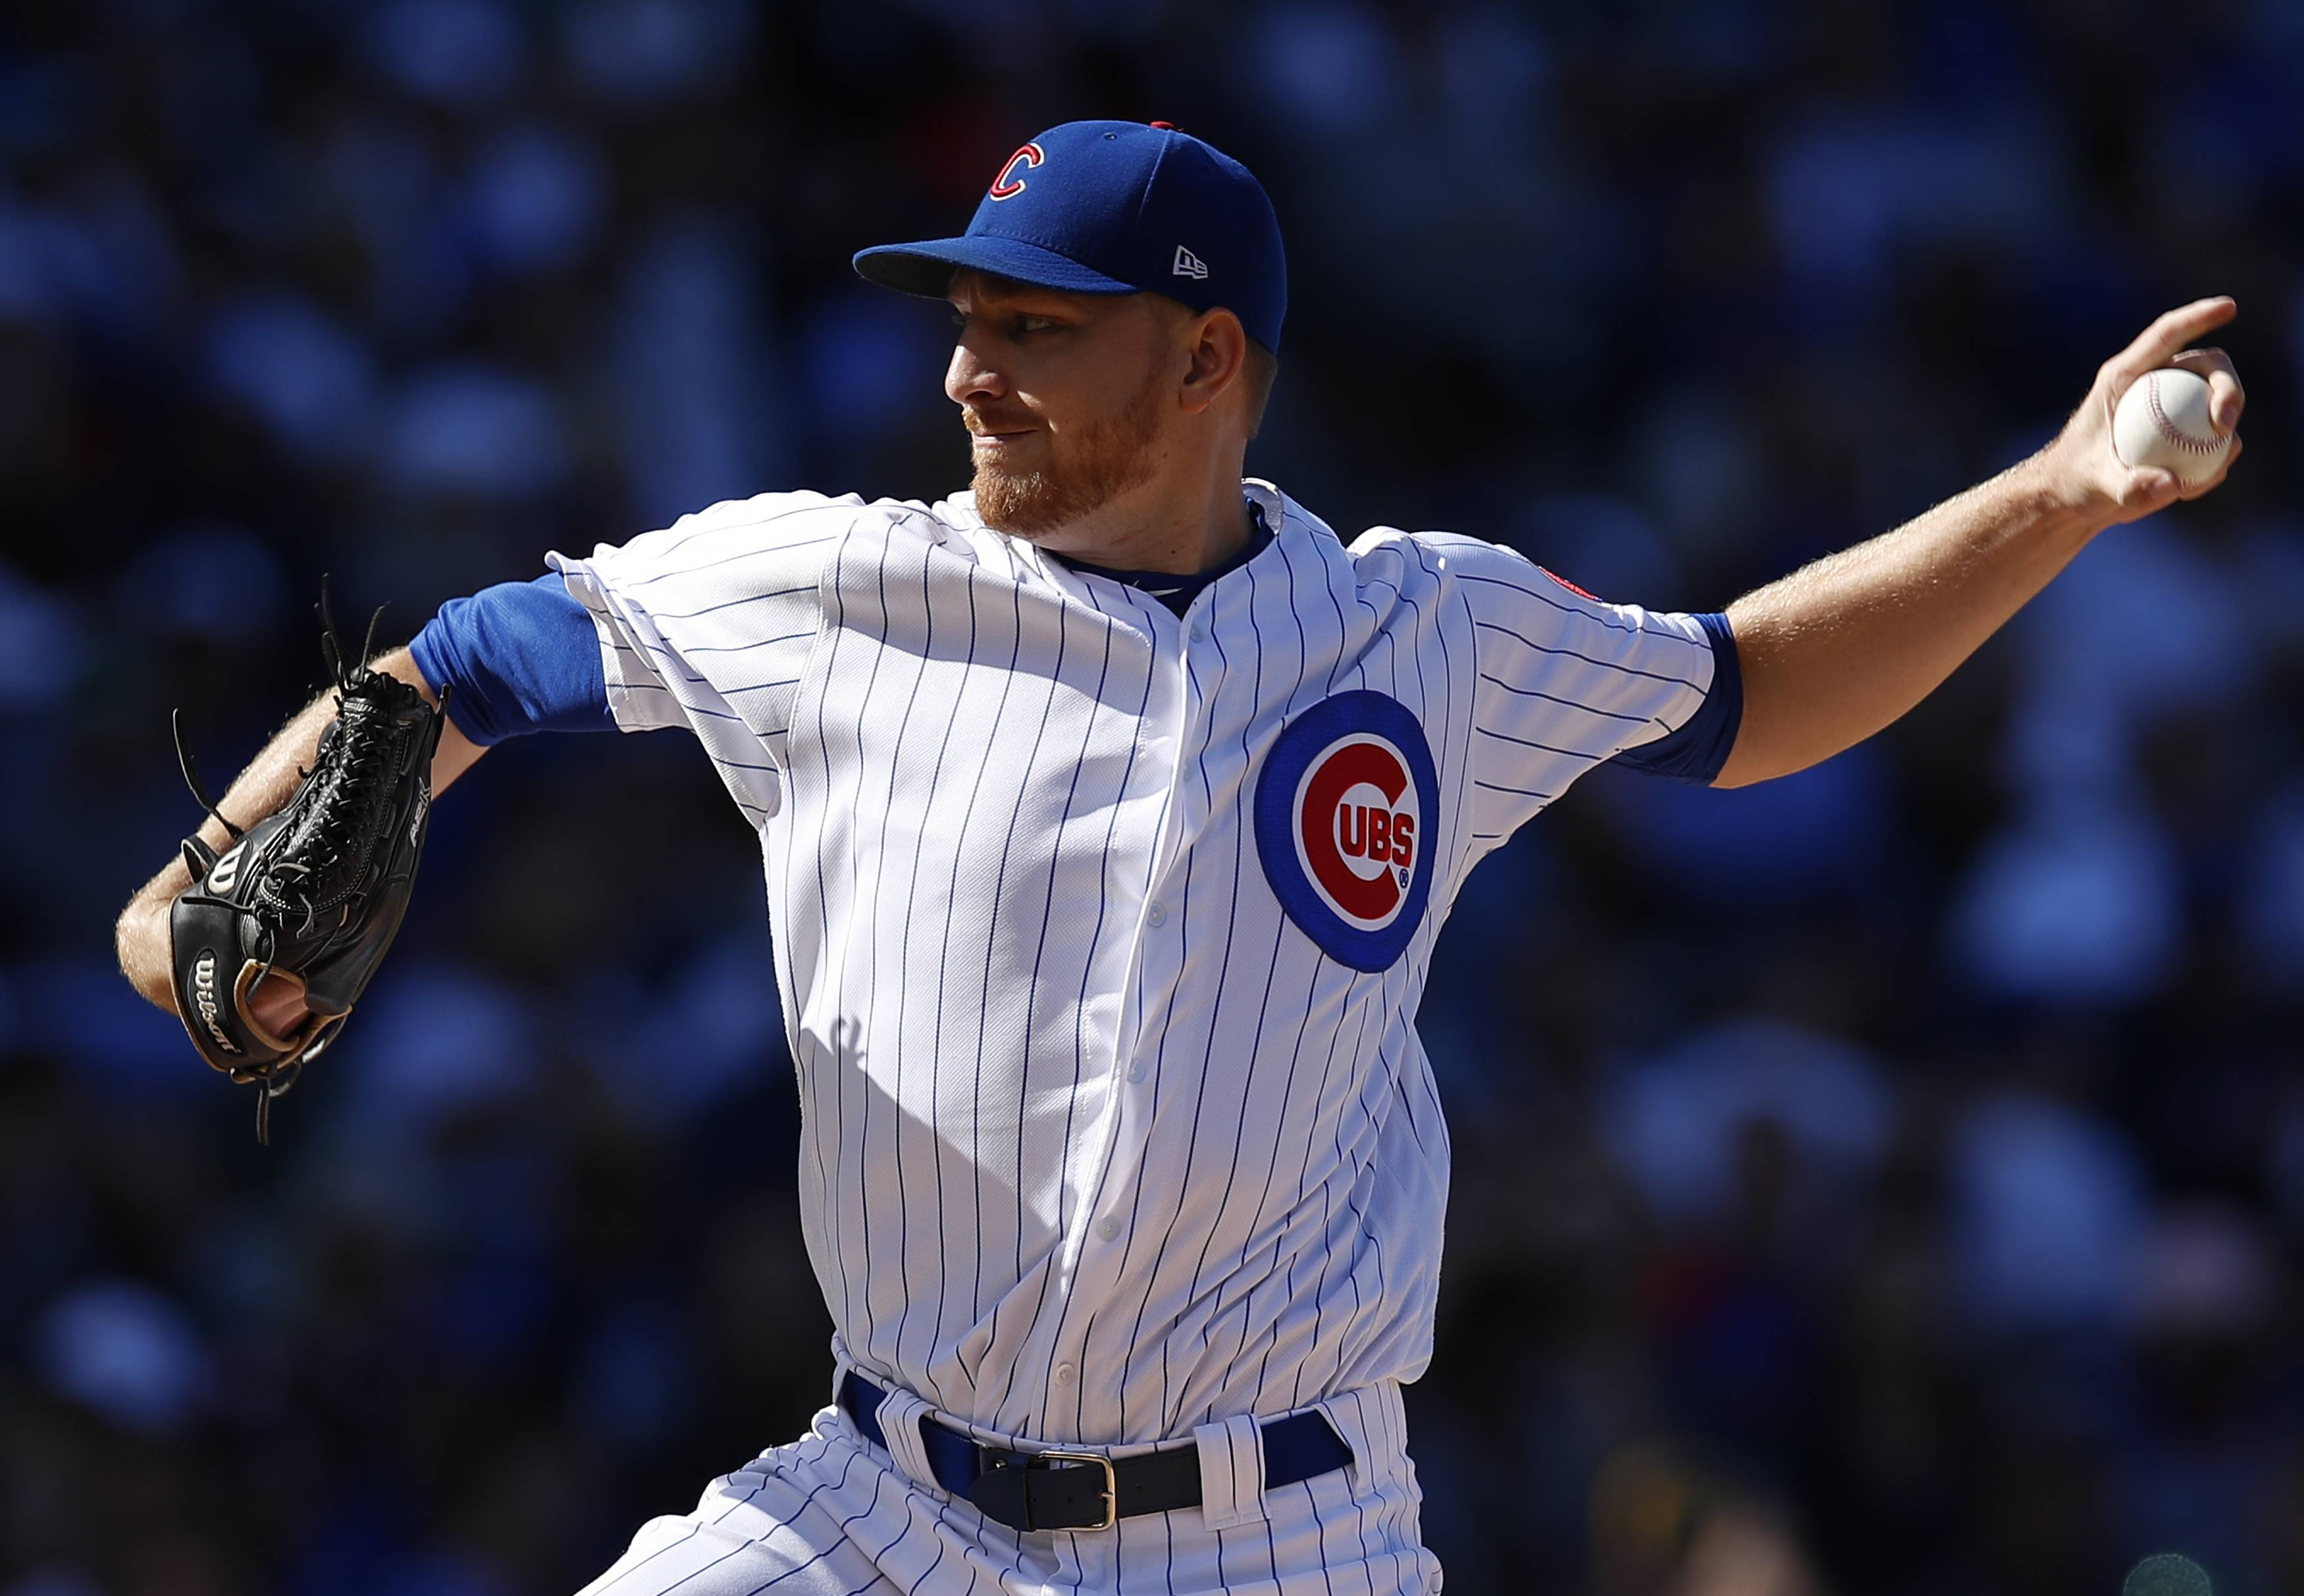 Chicago Cubs' Mike Montgomery pitches against the Milwaukee Brewers during the first inning of a baseball game, Saturday, Sept. 9, 2017, in Chicago. (AP Photo/Jim Young)